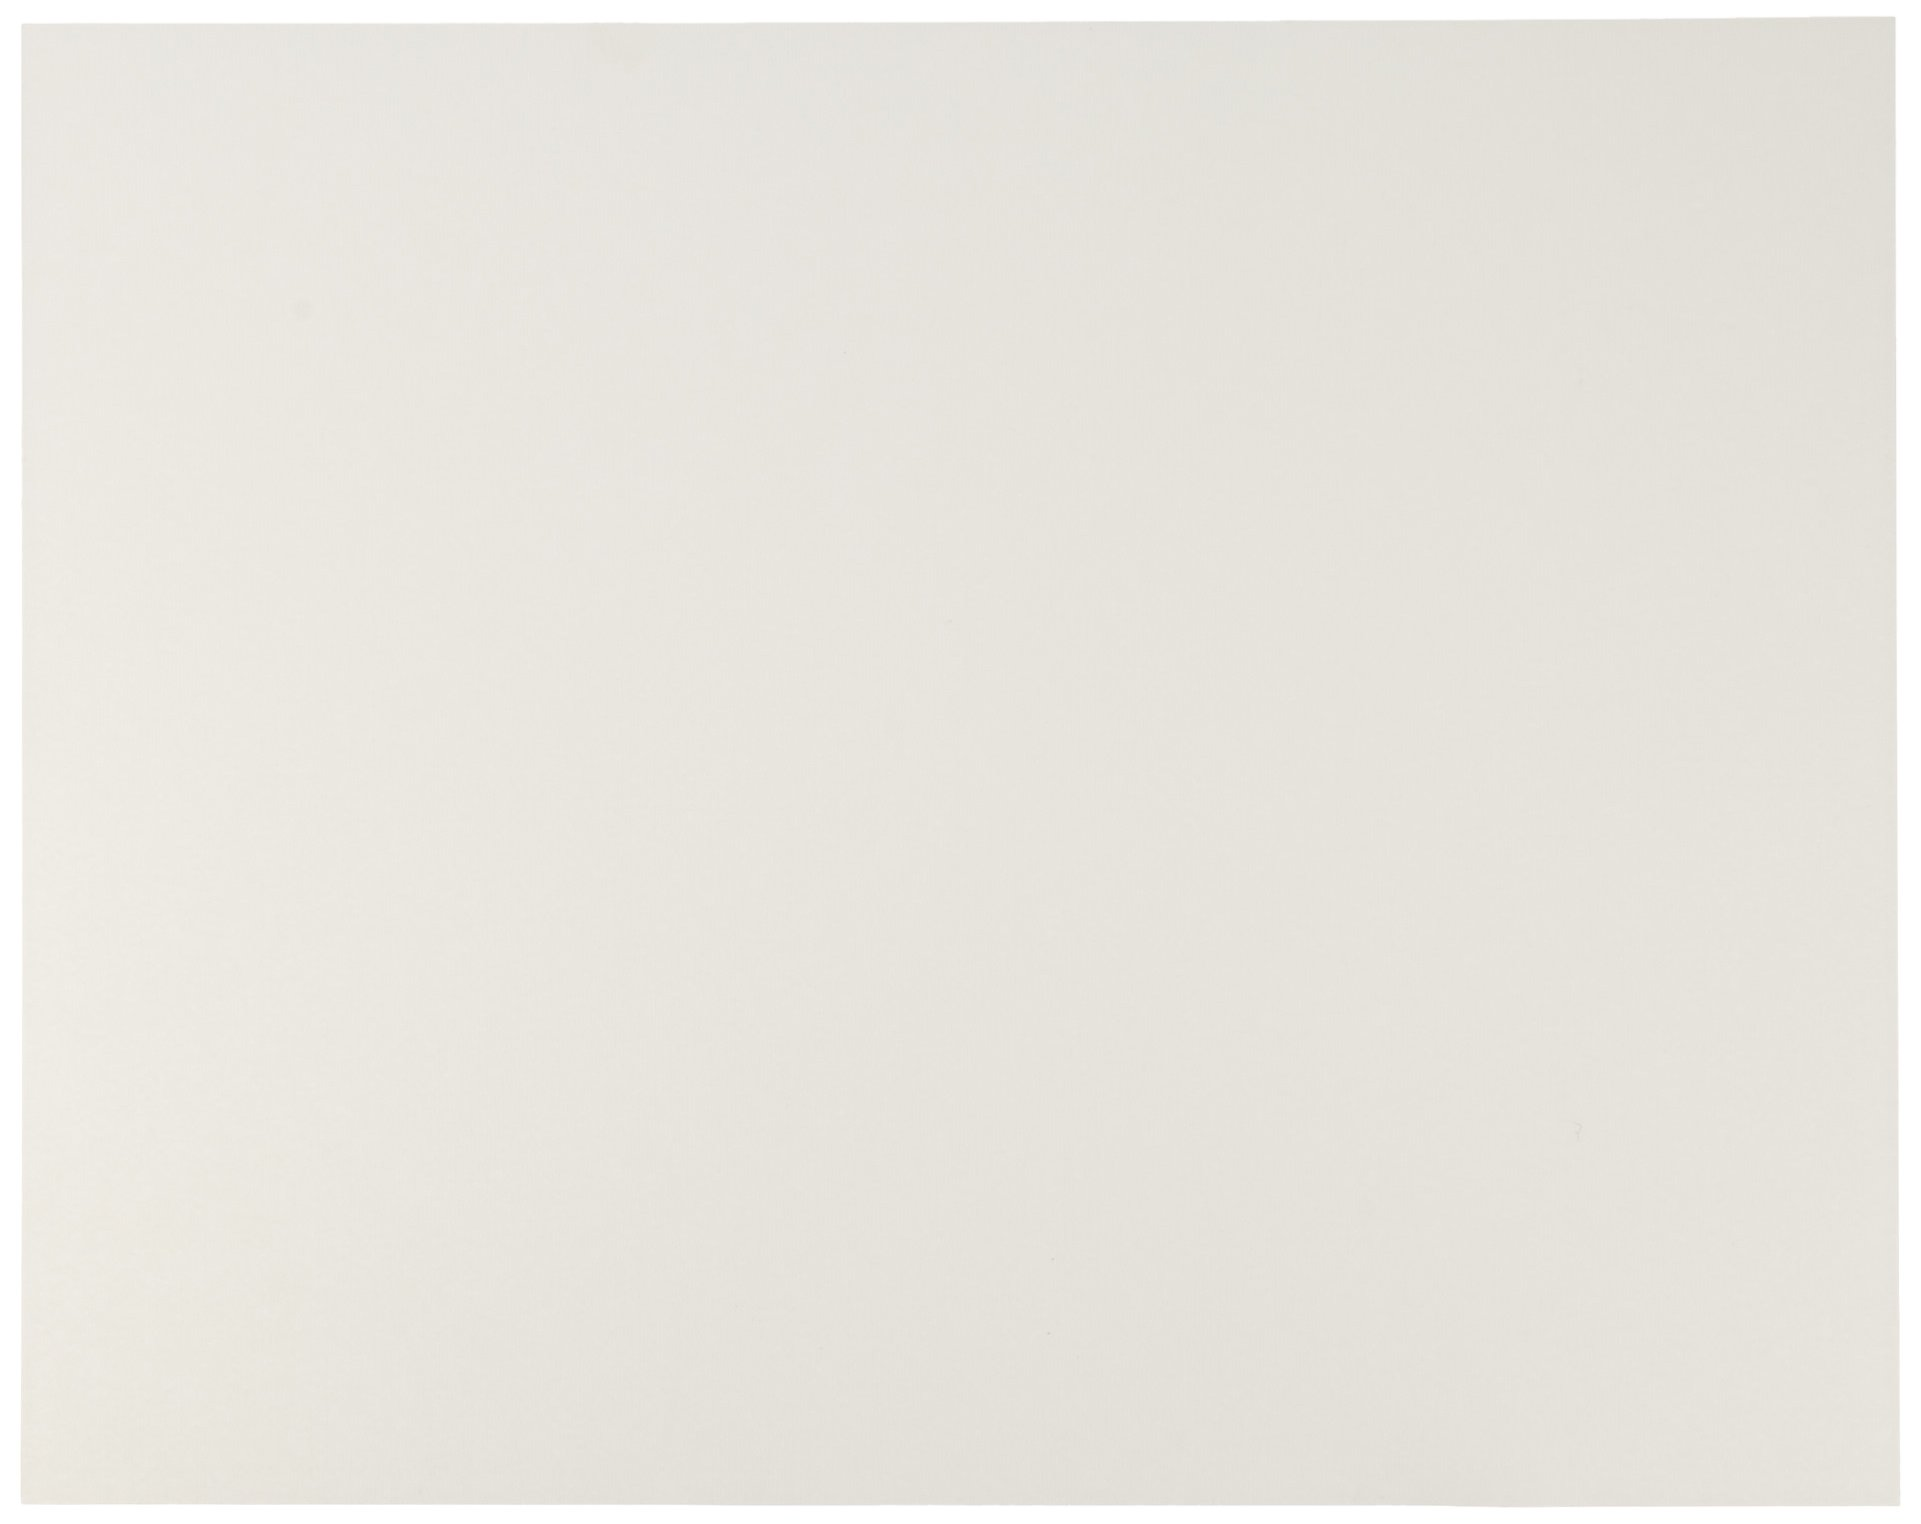 Sax Halifax Cold Press Watercolor Paper, 19 X 24 Inches, 90 lb, White, 100 Sheets by Sax